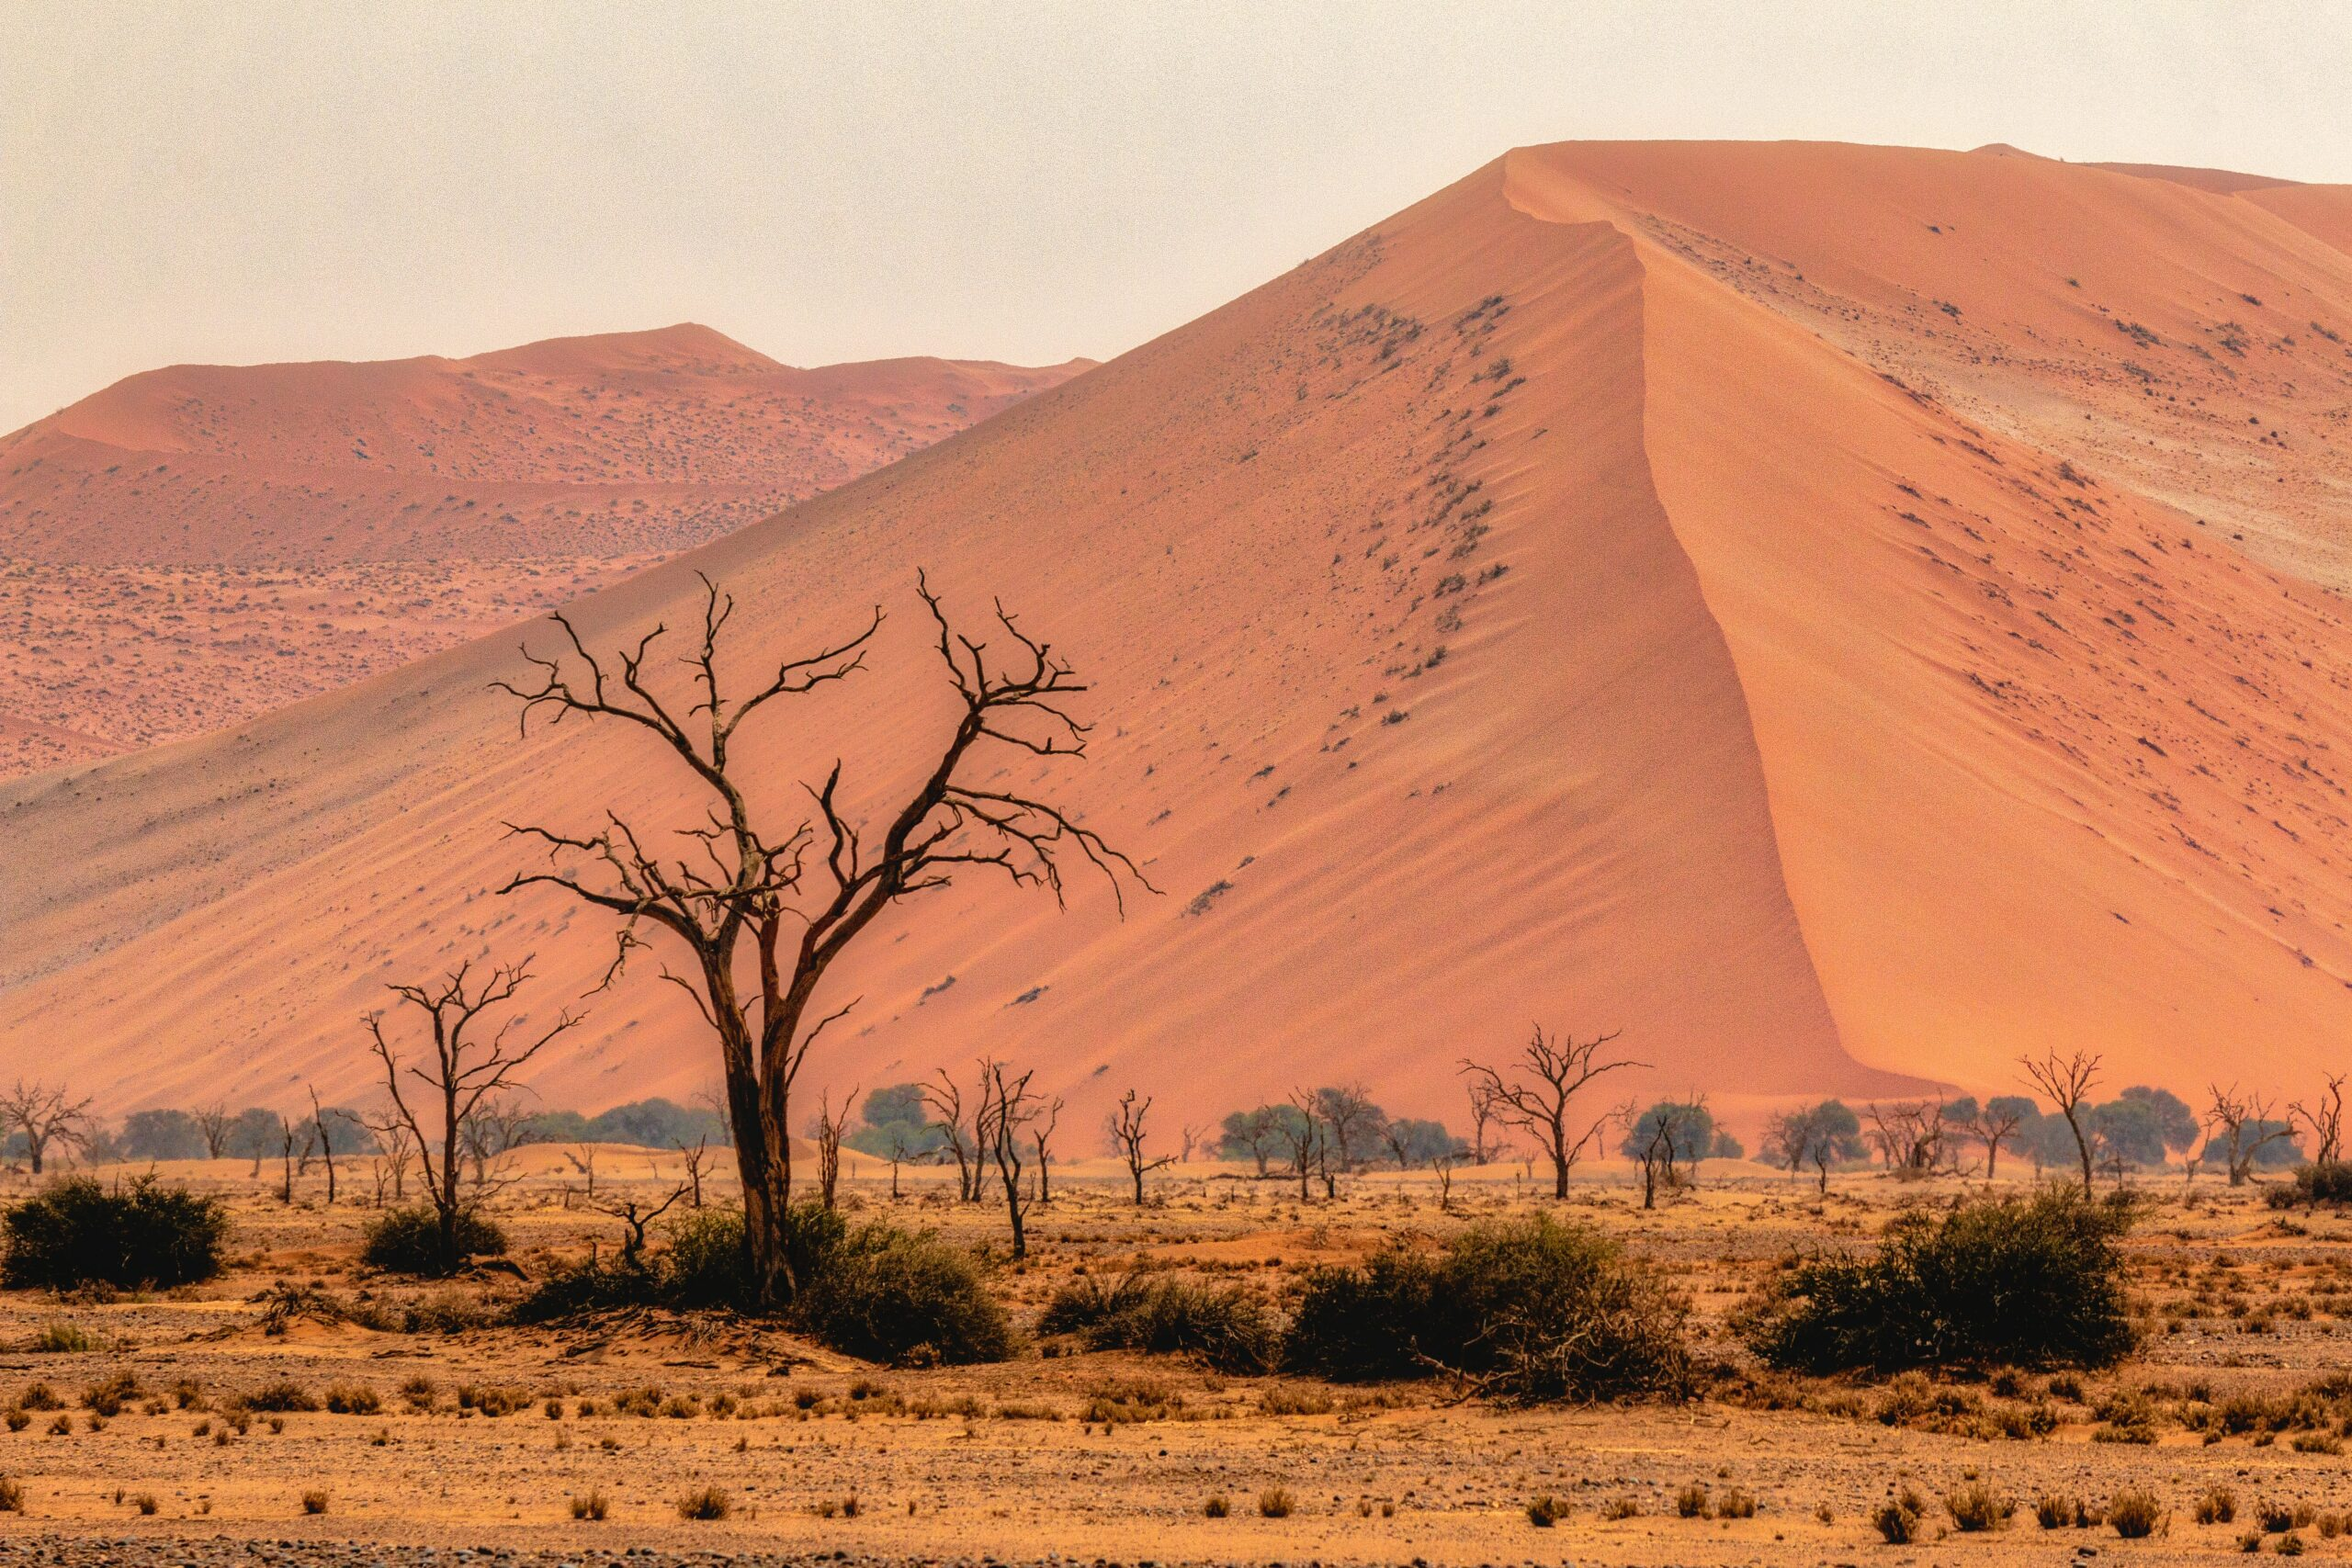 The serene sand dunes in Namibia